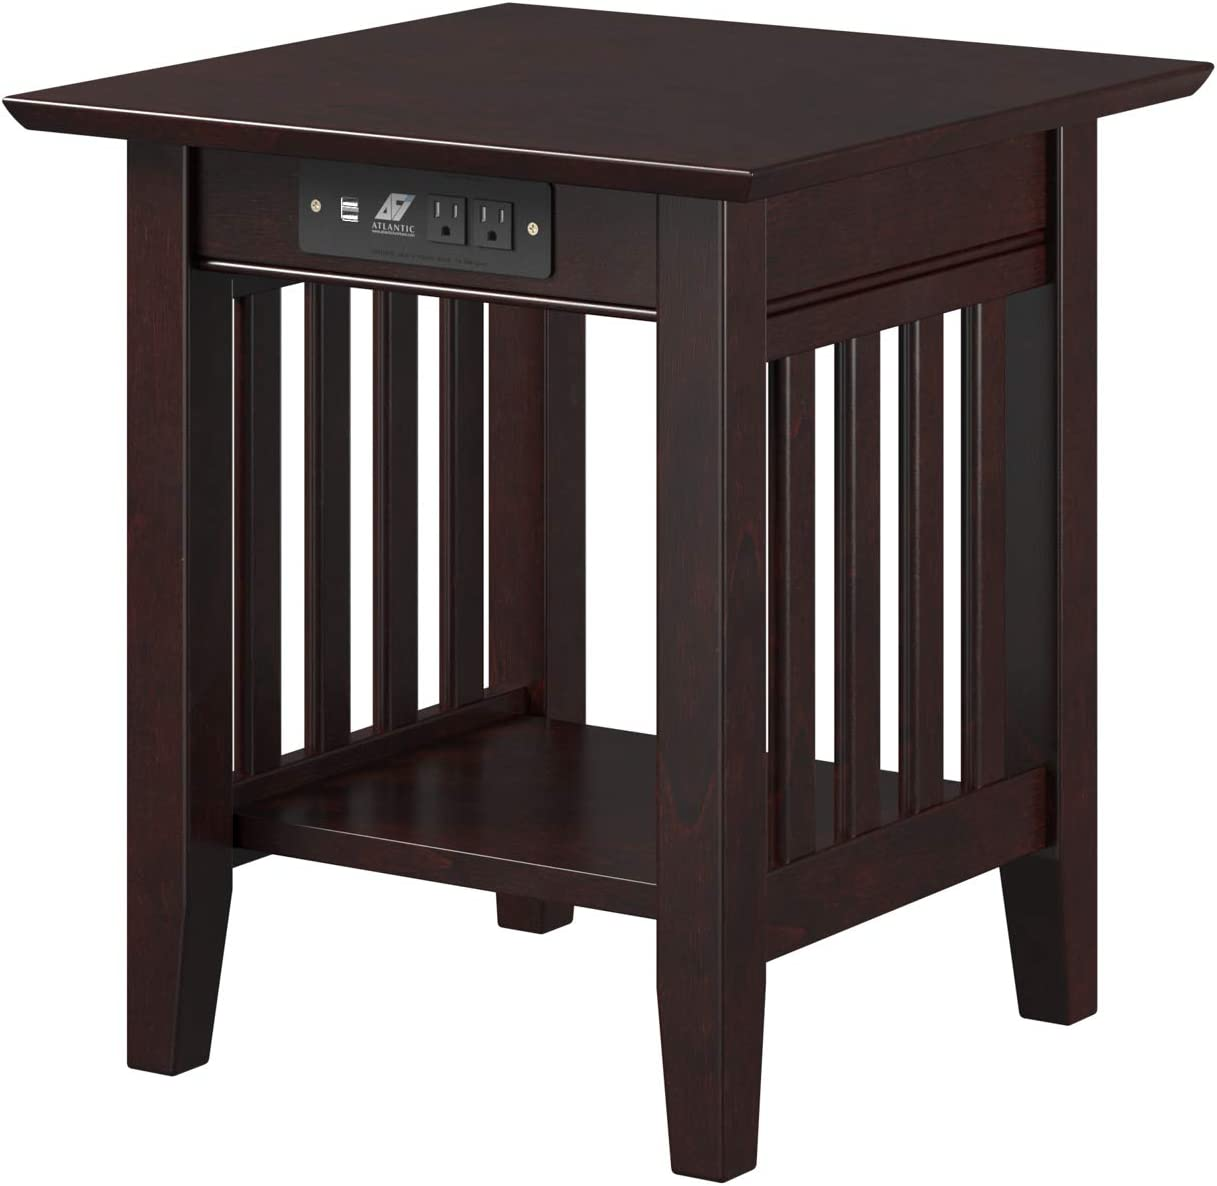 Atlantic Furniture Mission End Table, Espresso